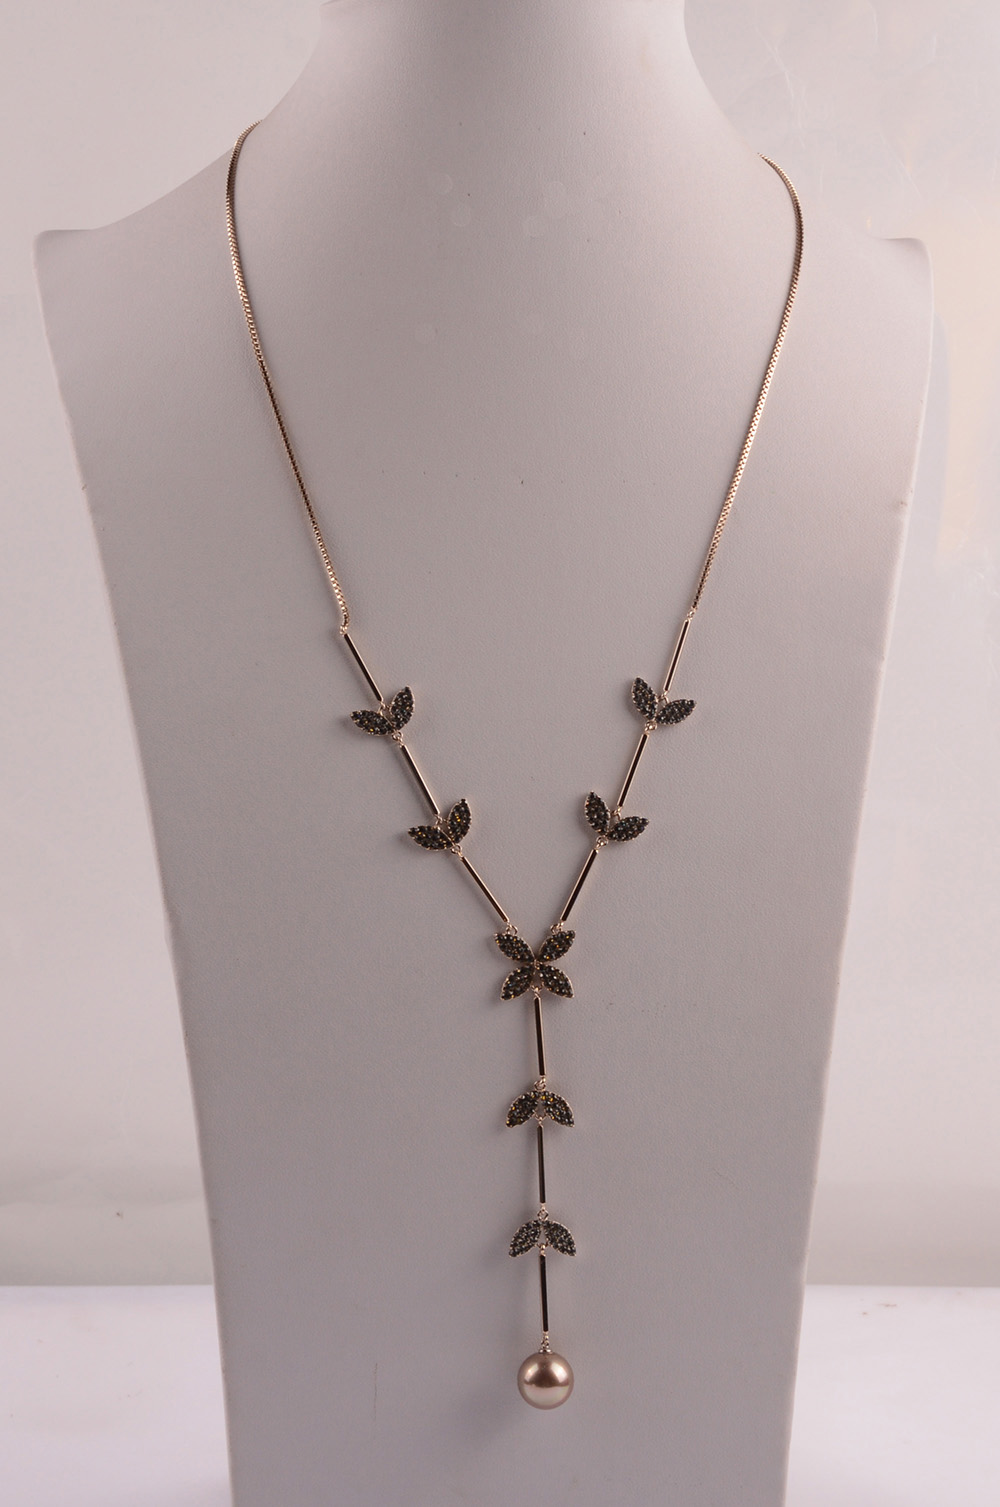 907540 Lady Long Necklace